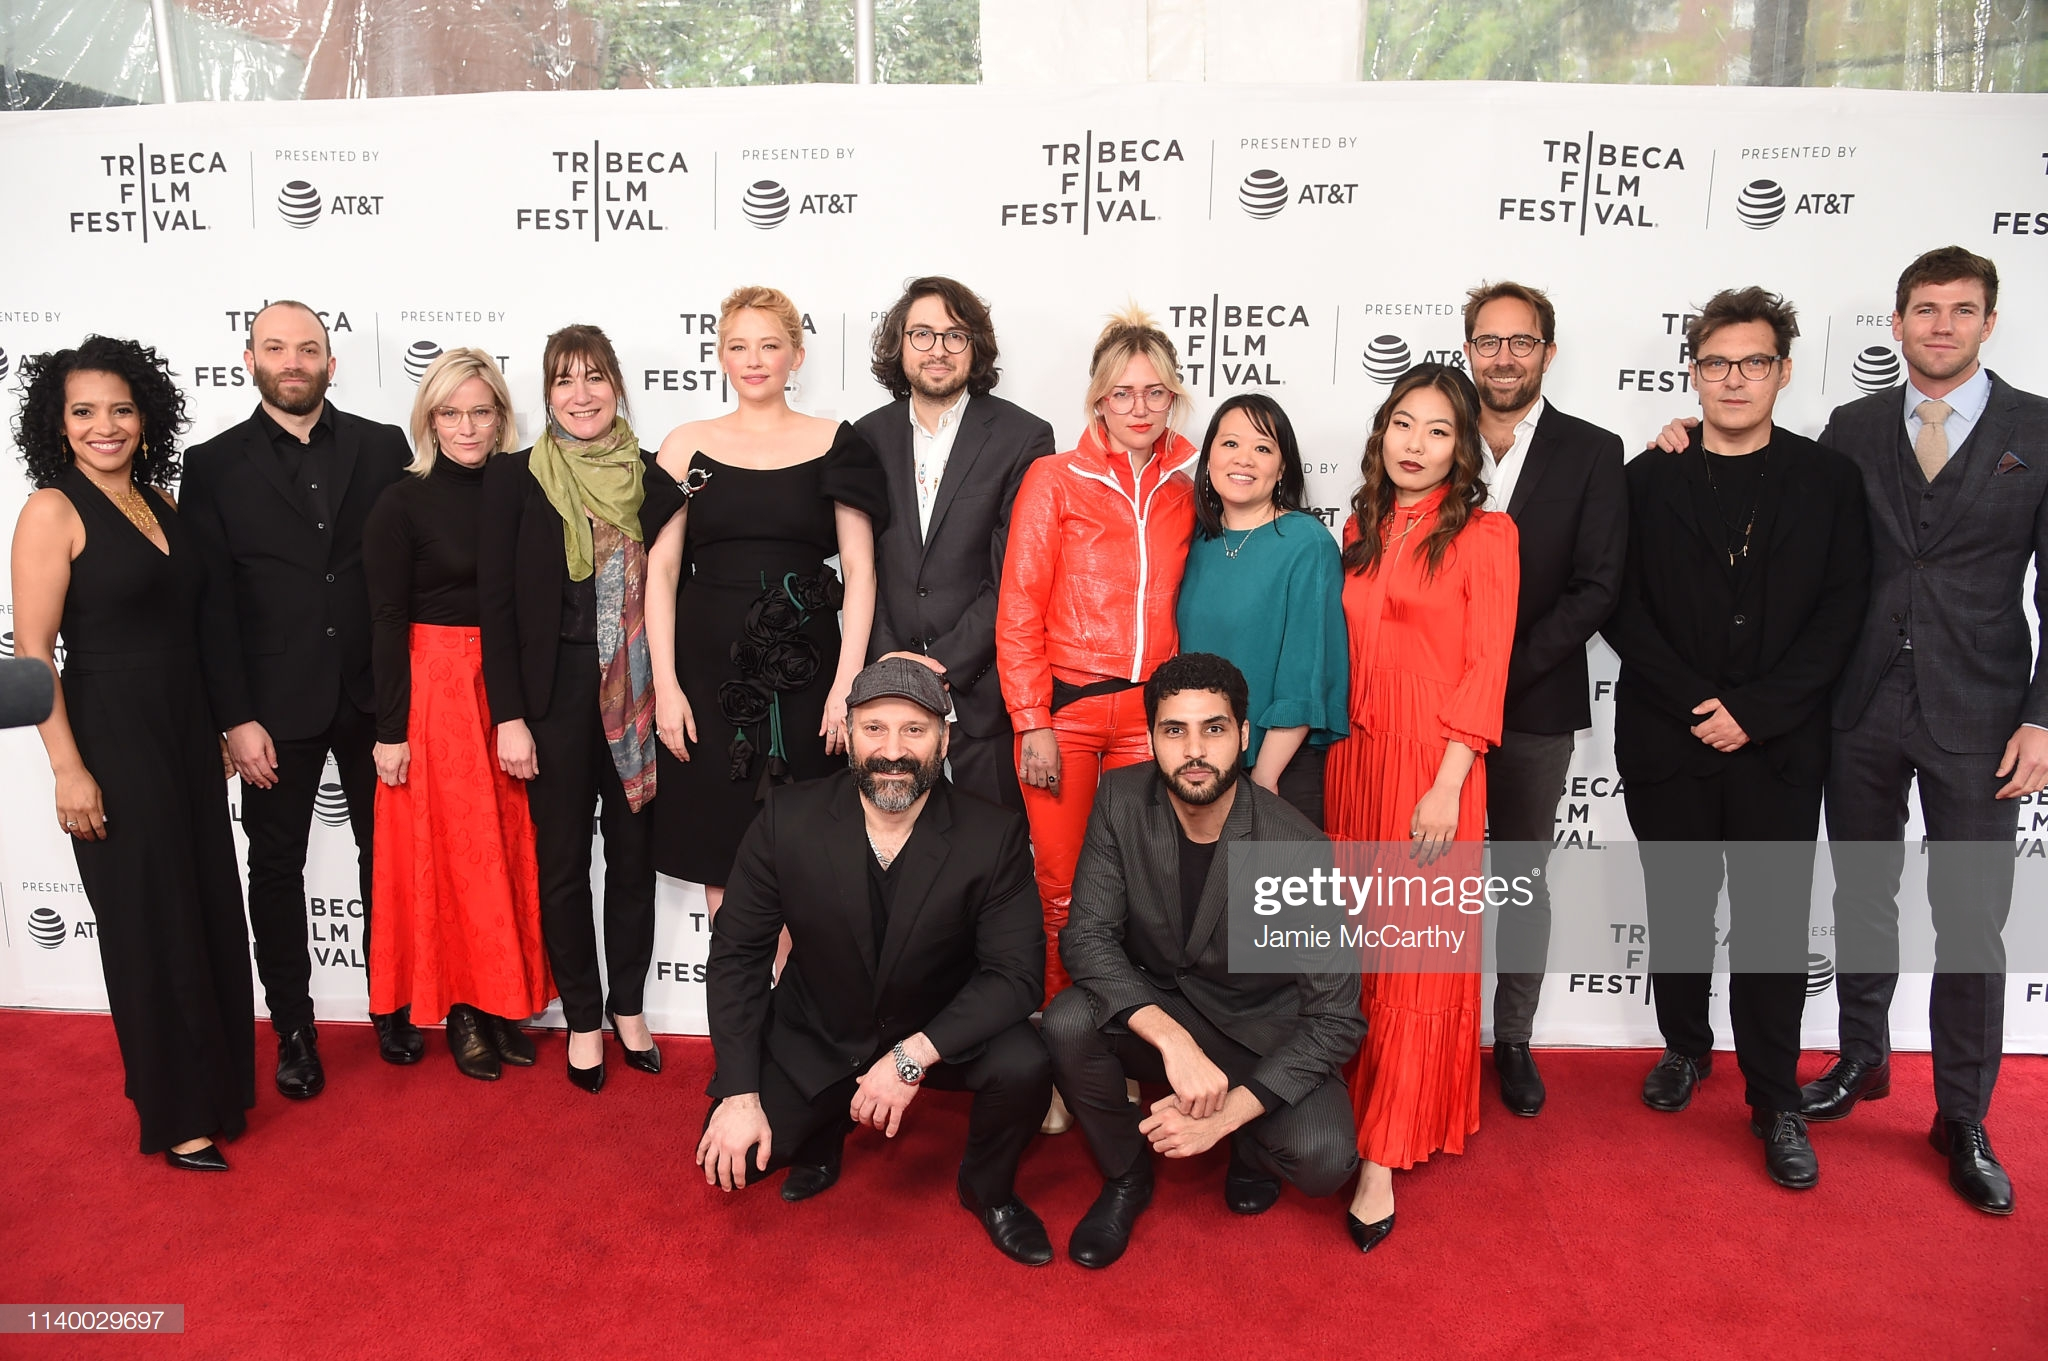 Nathan Halpern attends the Tribeca Film Festival premiere of SWALLOW